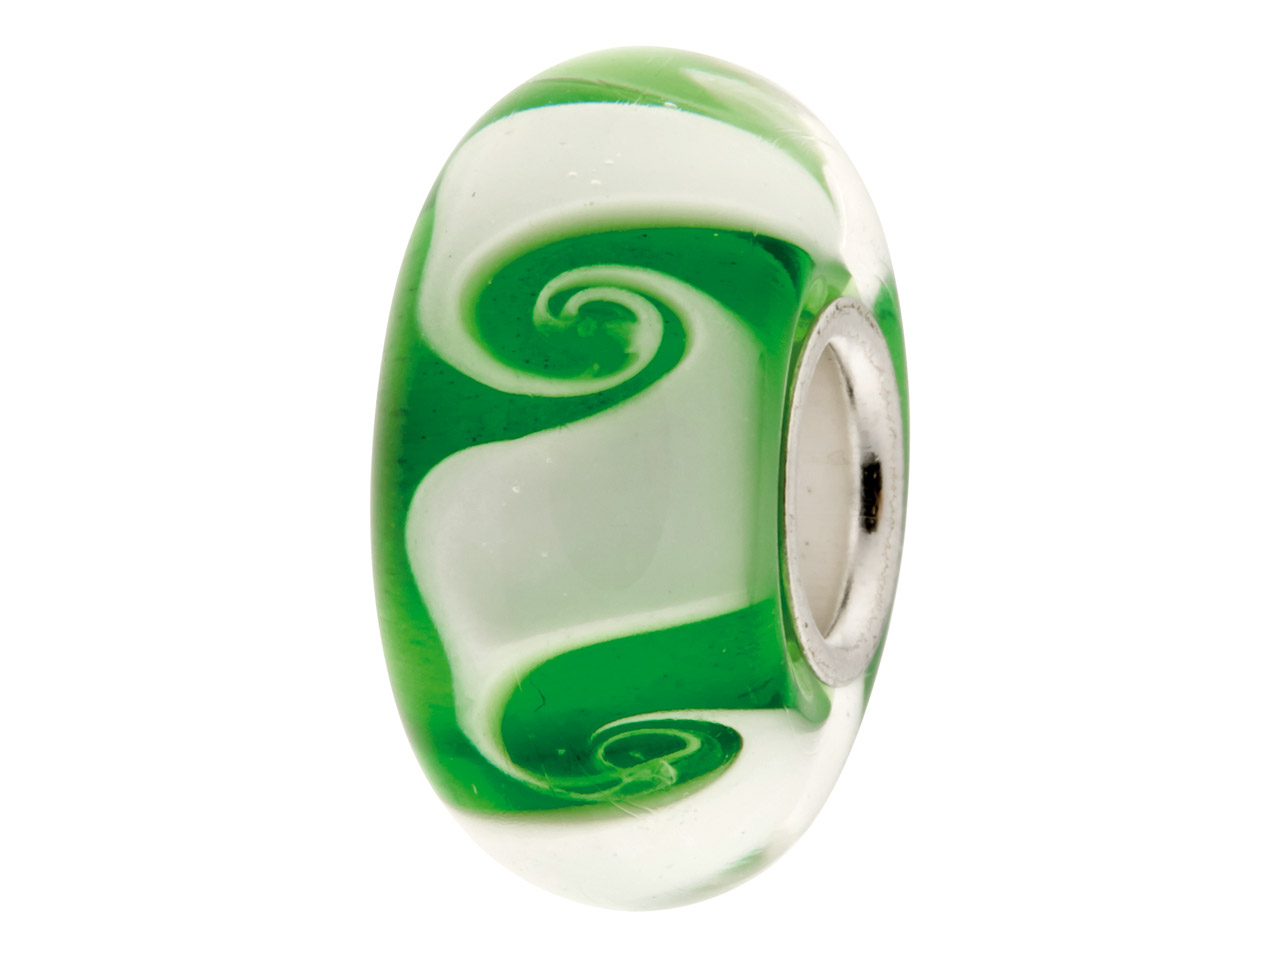 Glass Charm Bead, Green And White  Spiral Pattern, Sterling Silver    Core